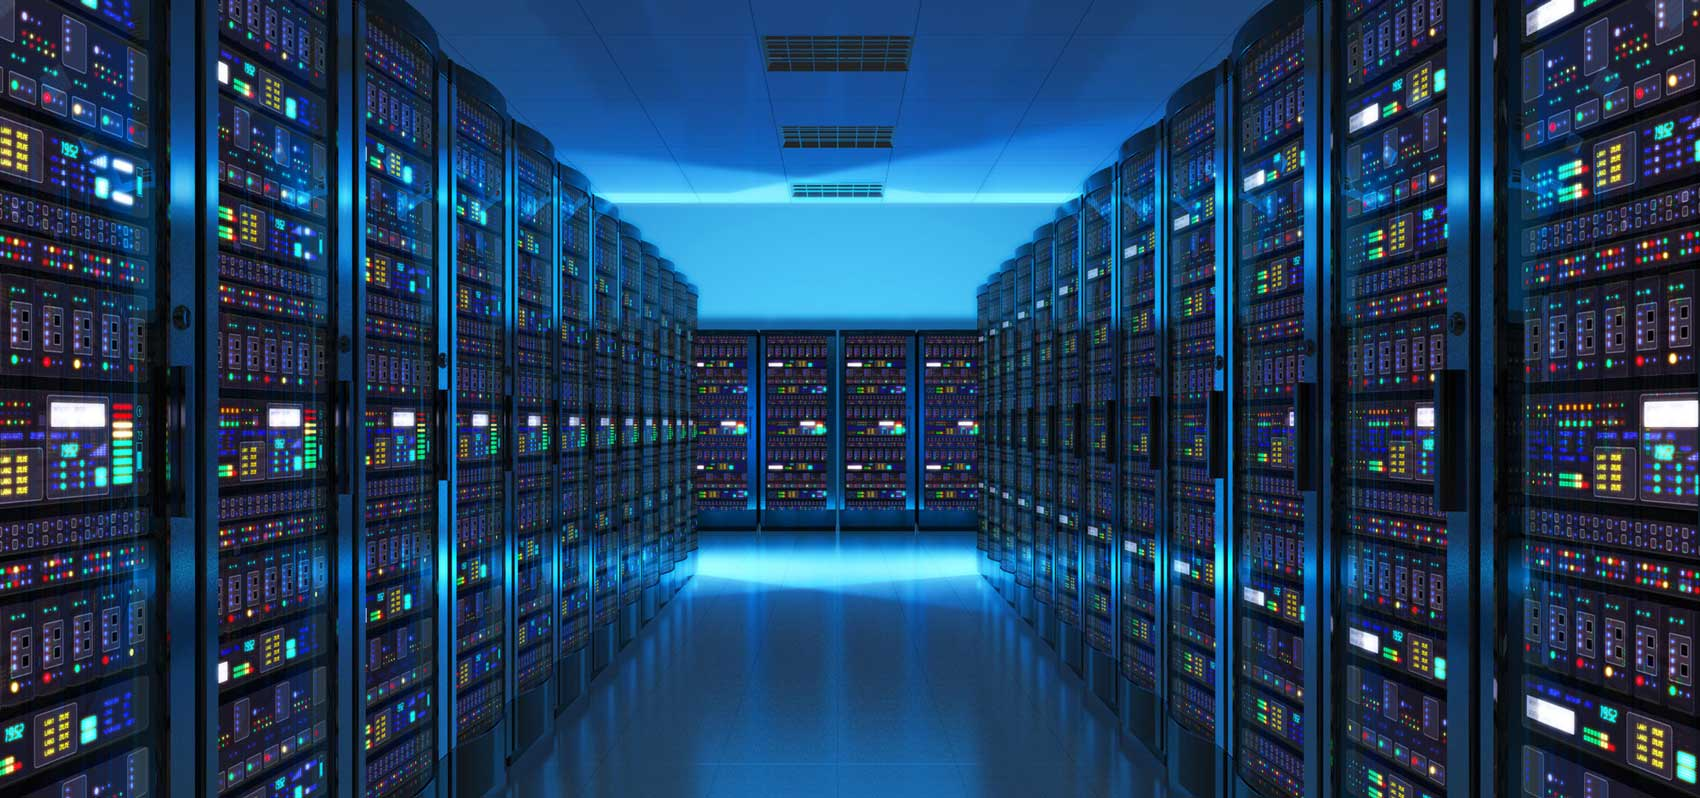 datacenter-datos